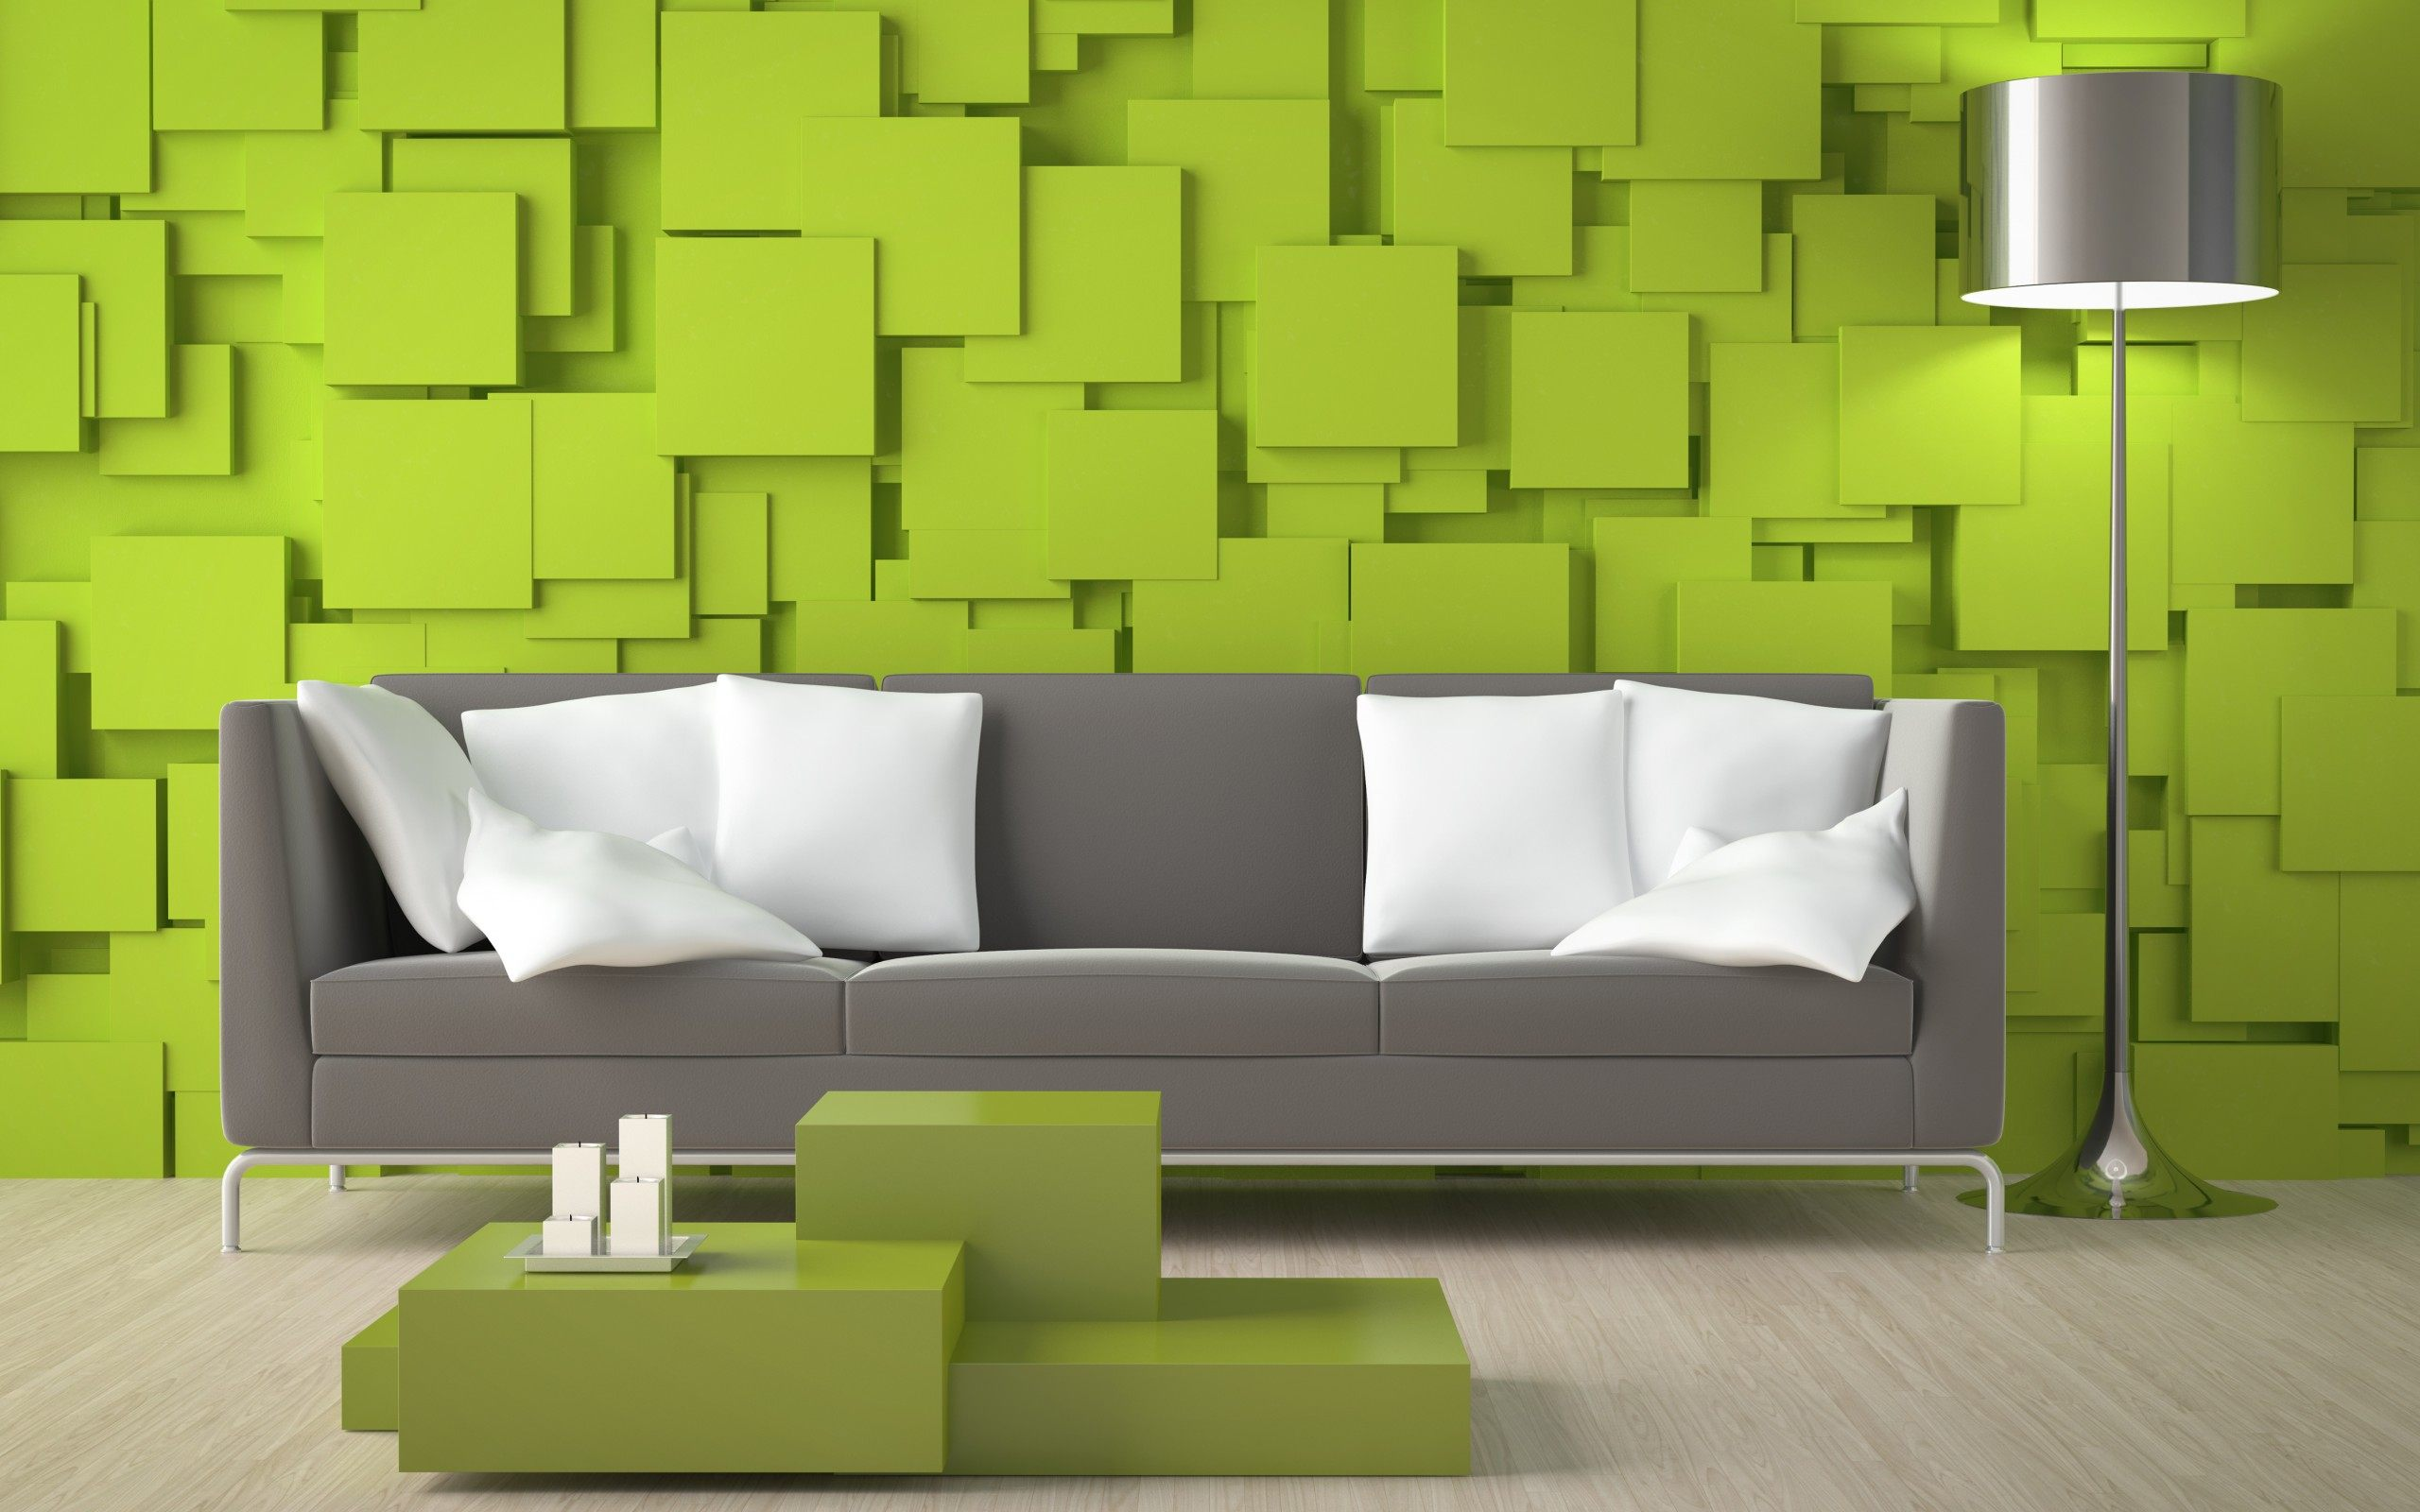 Exceptionnel Wallpapers For Home Walls Scenery Wallpapers For Home Walls  Interior Design Office Ceiling Wallpapers ...